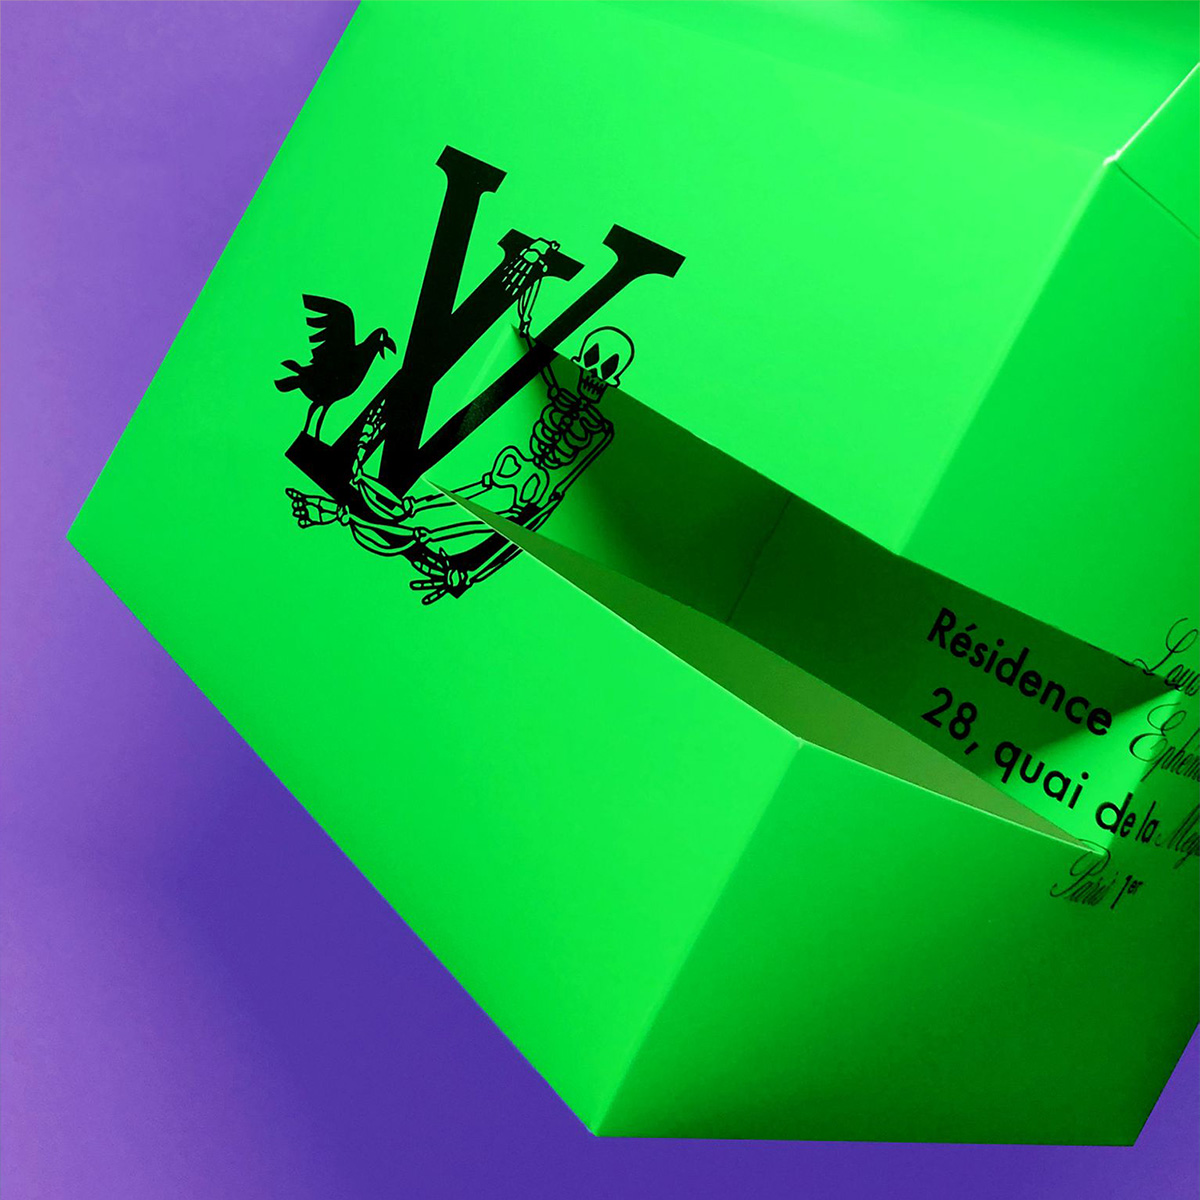 Louis Vuitton Packaging Hall of Fame